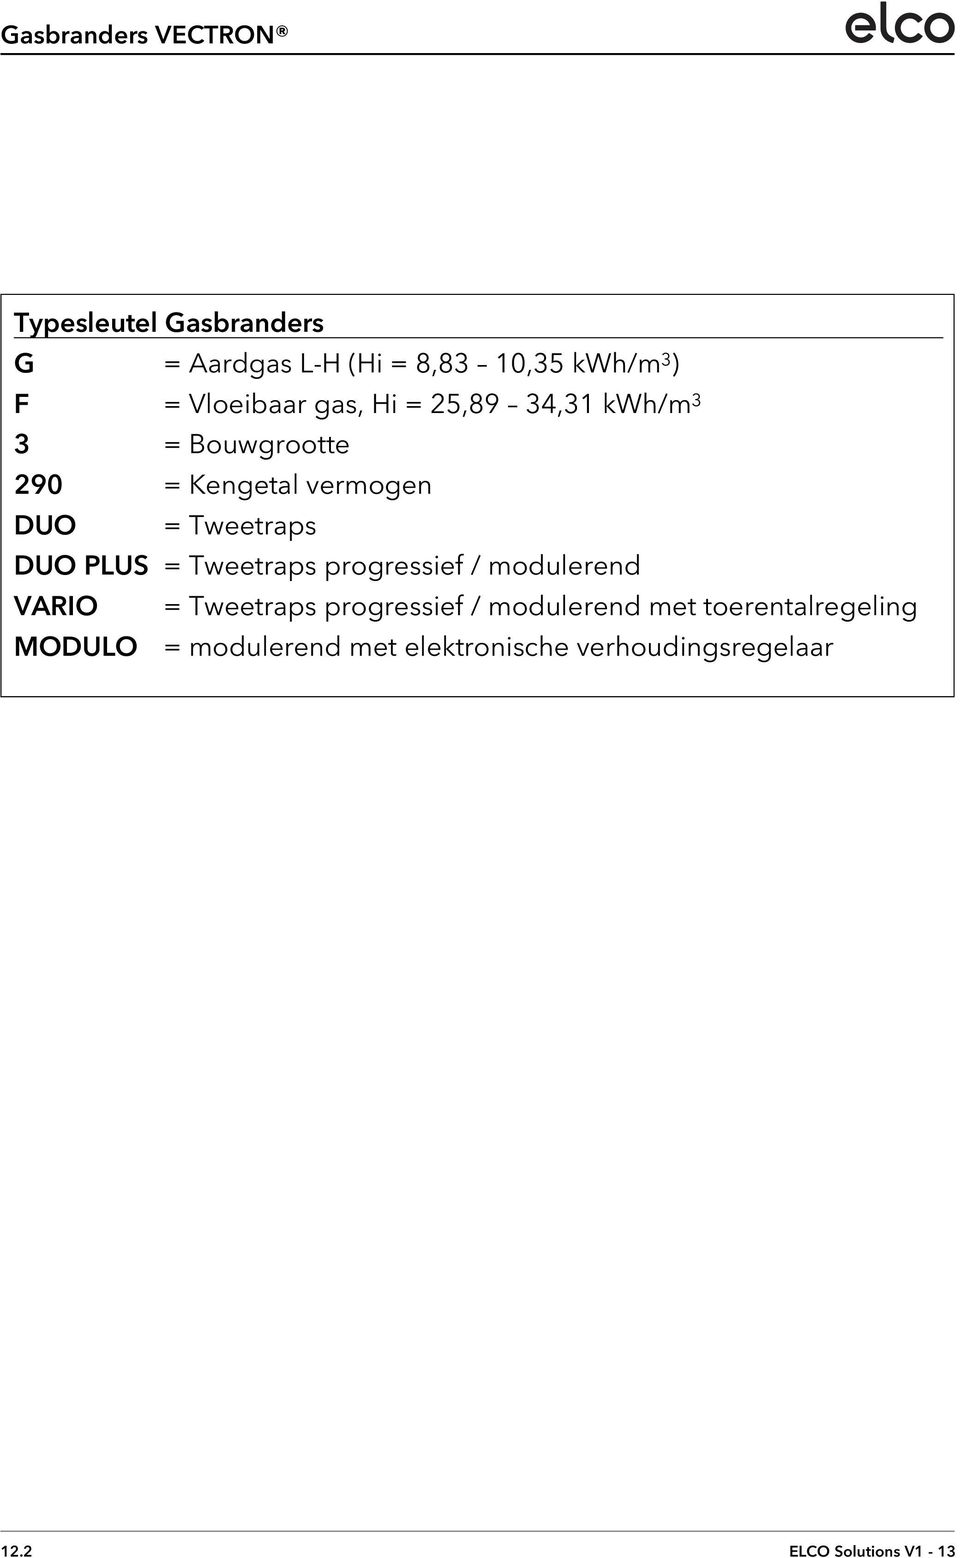 DUO PLUS = Tweetraps progressief / modulerend VARIO = Tweetraps progressief / modulerend met